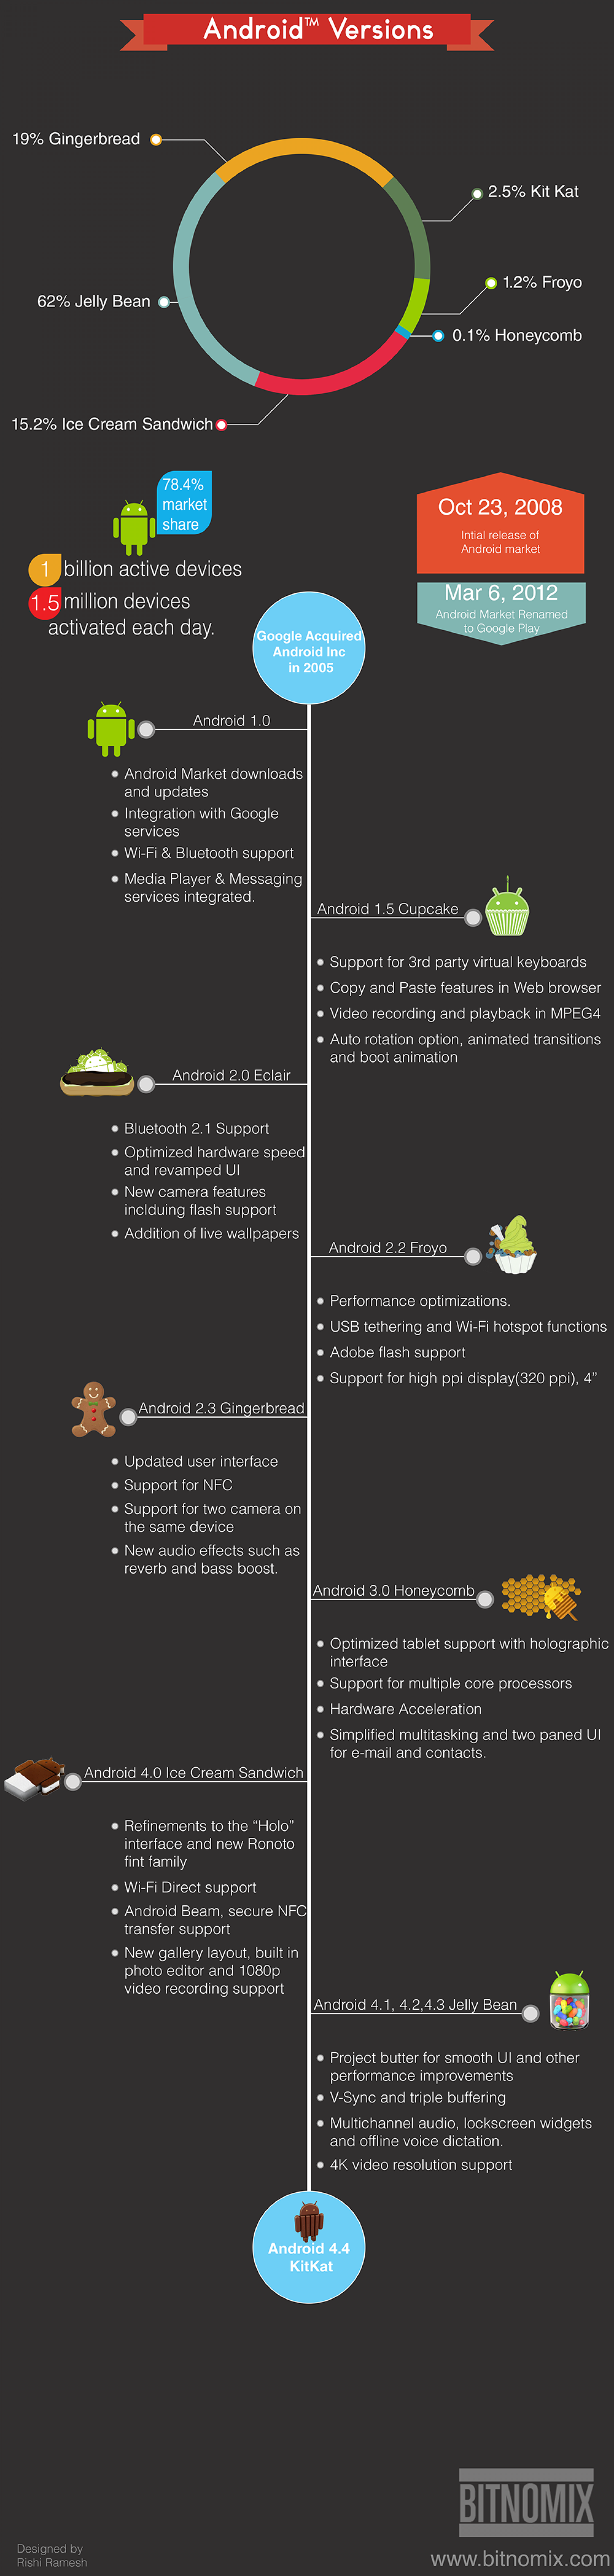 Android Versions | Visual.ly